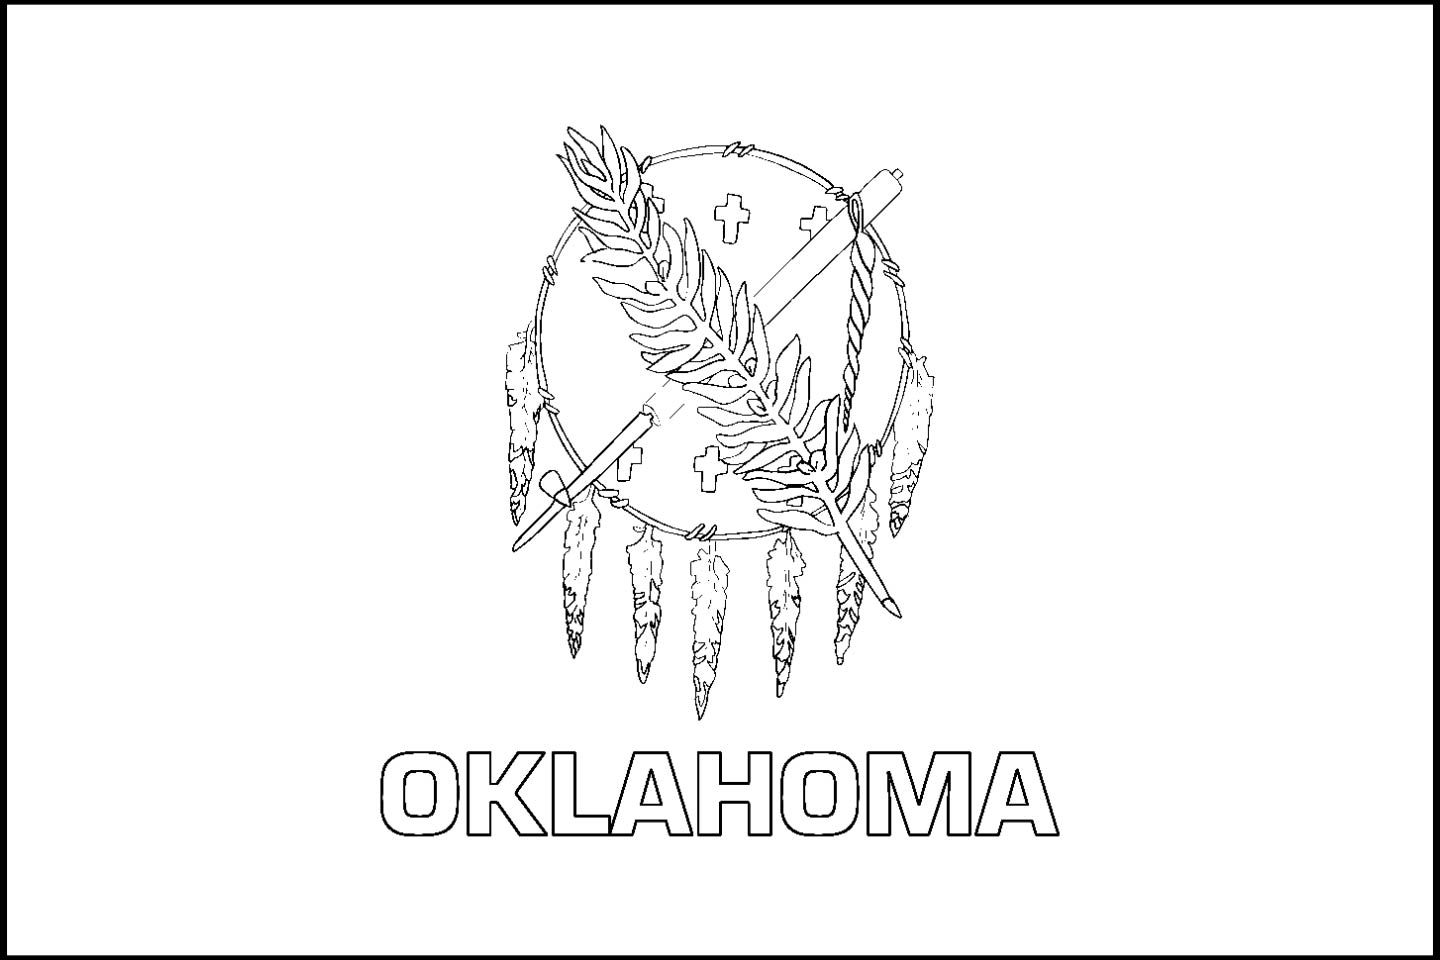 Oklahoma Drawing At Getdrawings